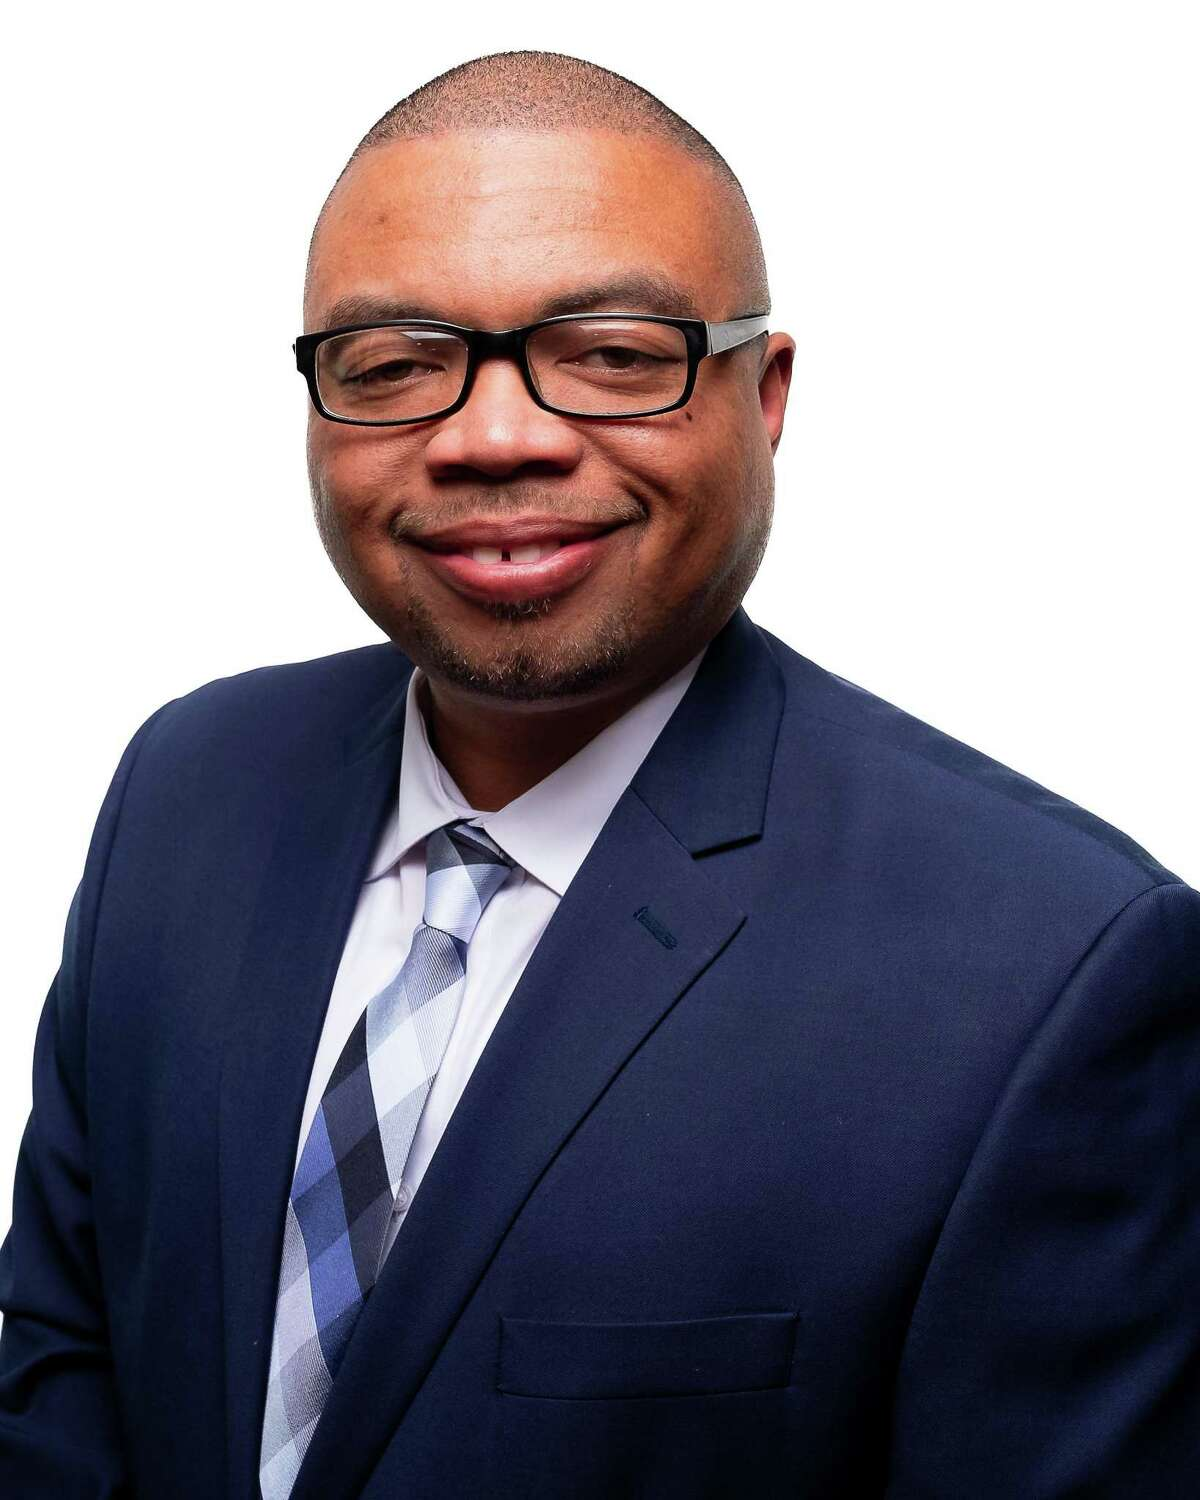 Floyd Hodges Jr., an engineering manager for a Houston construction engineering firm, is challenging six-year Alvin ISD incumbent and board vice president Vivian Scheibel in the Nov. 3 election for Position 7.